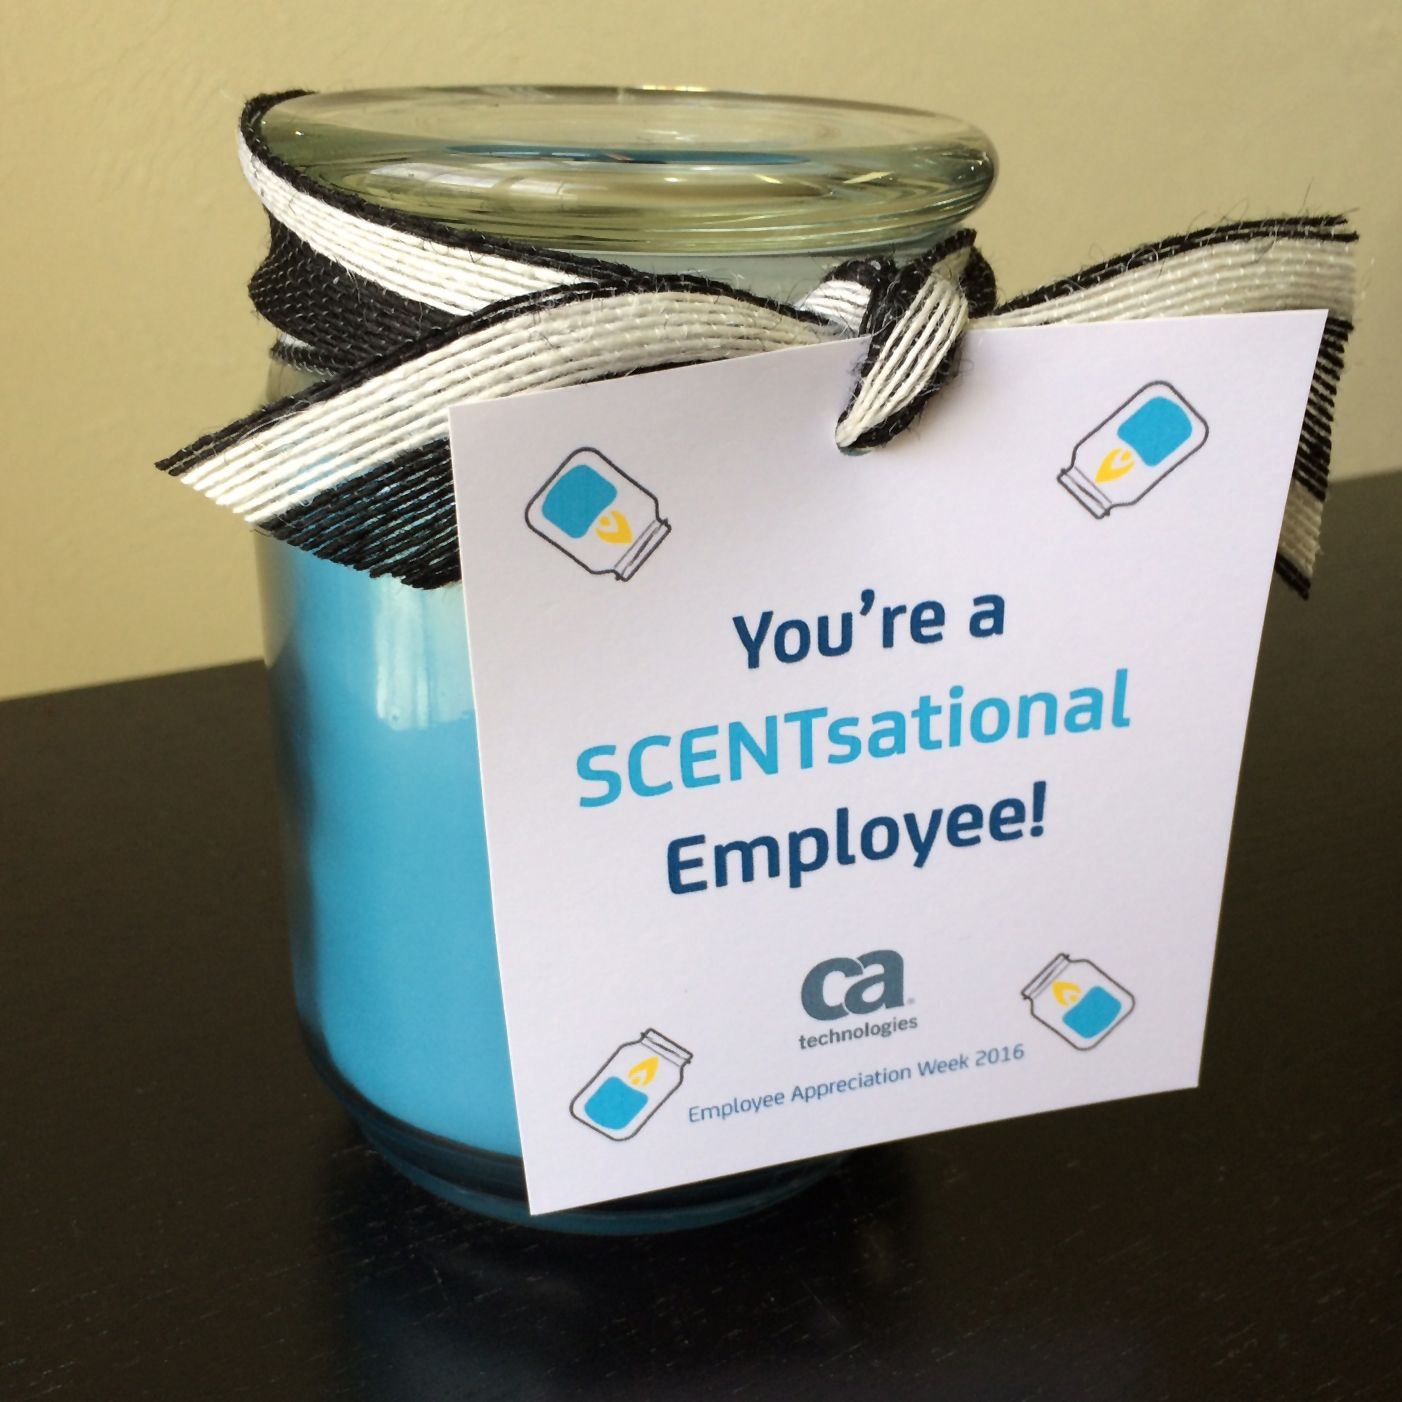 "you're a scentsational employee!"" scented candle 